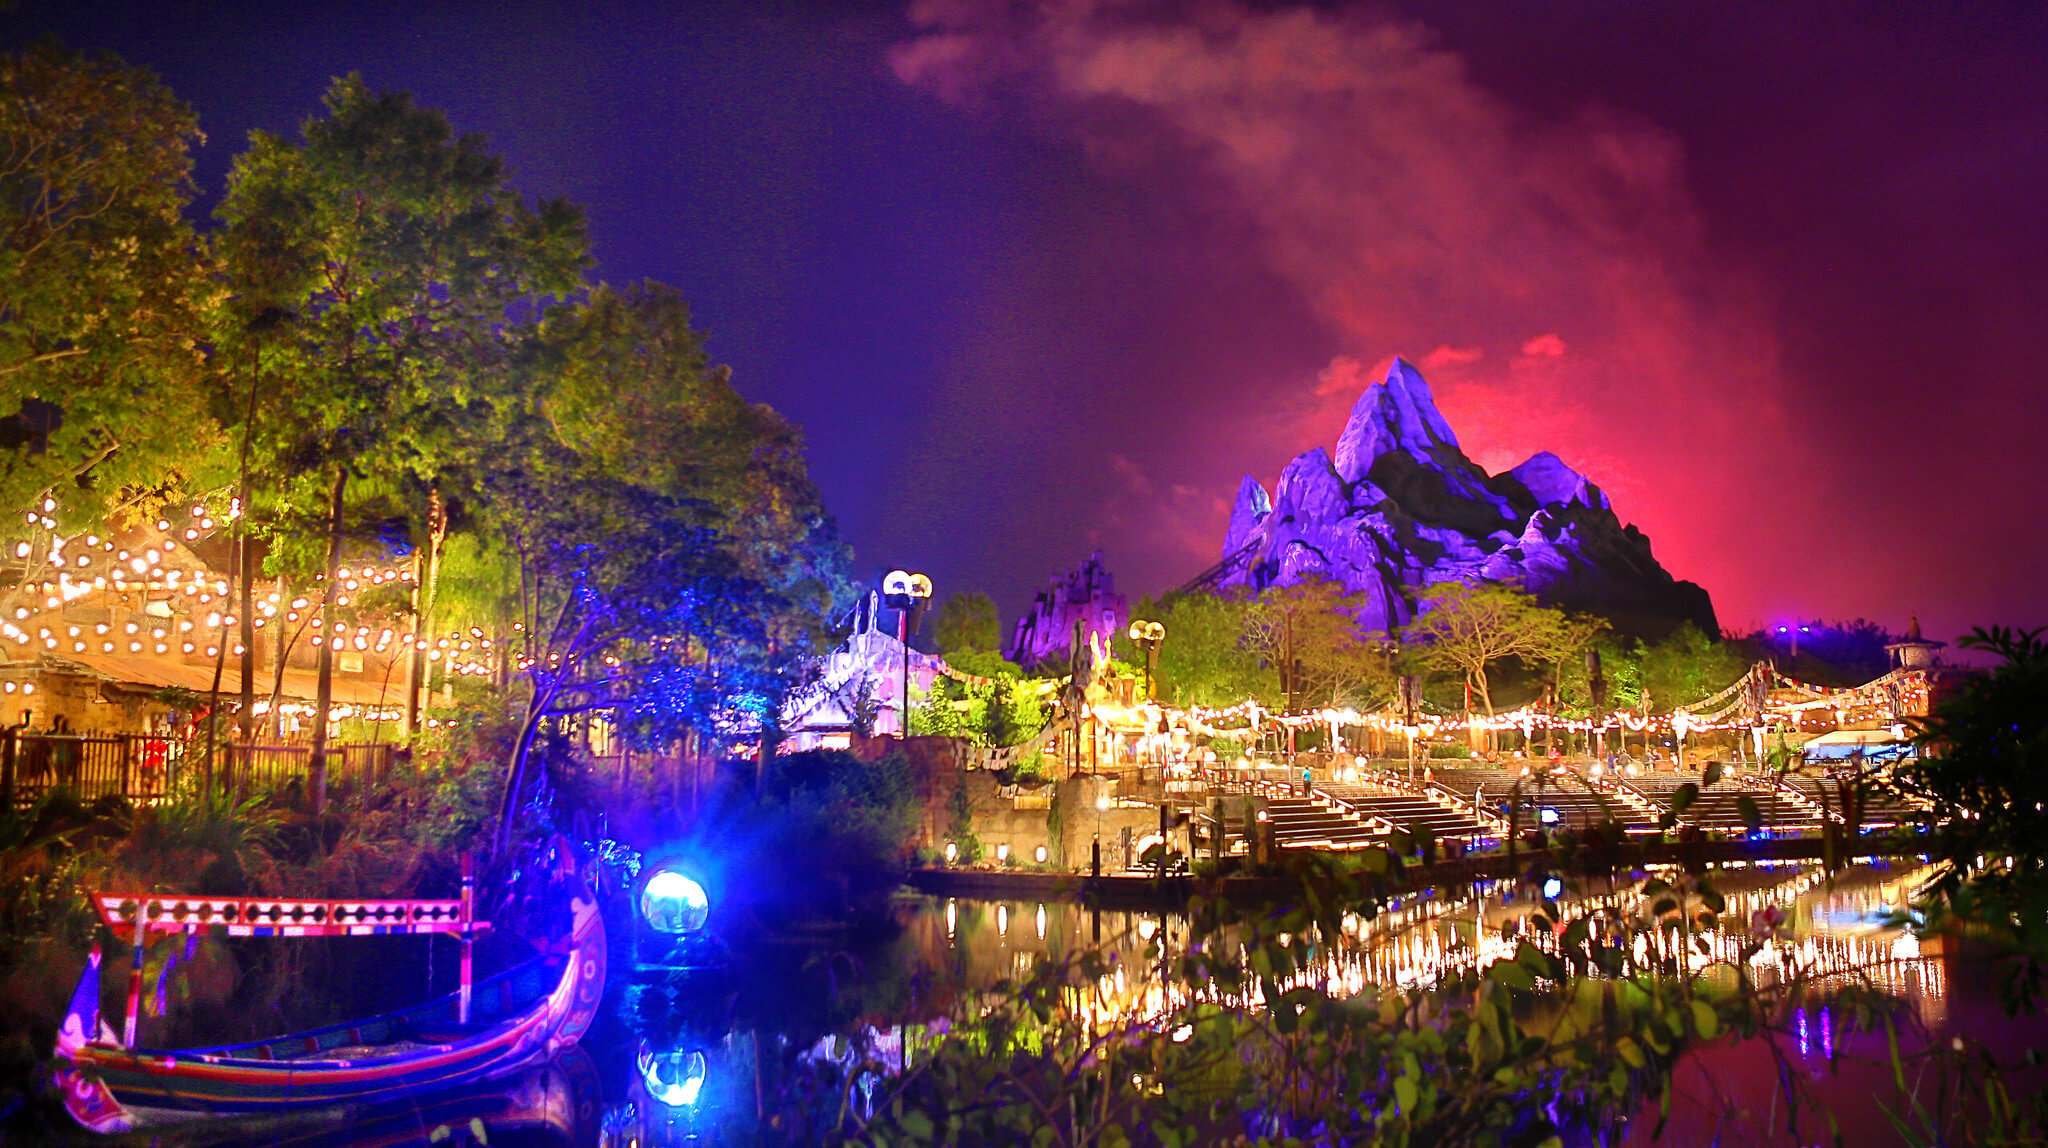 Noite no parque Animal Kingdom da Disney Orlando